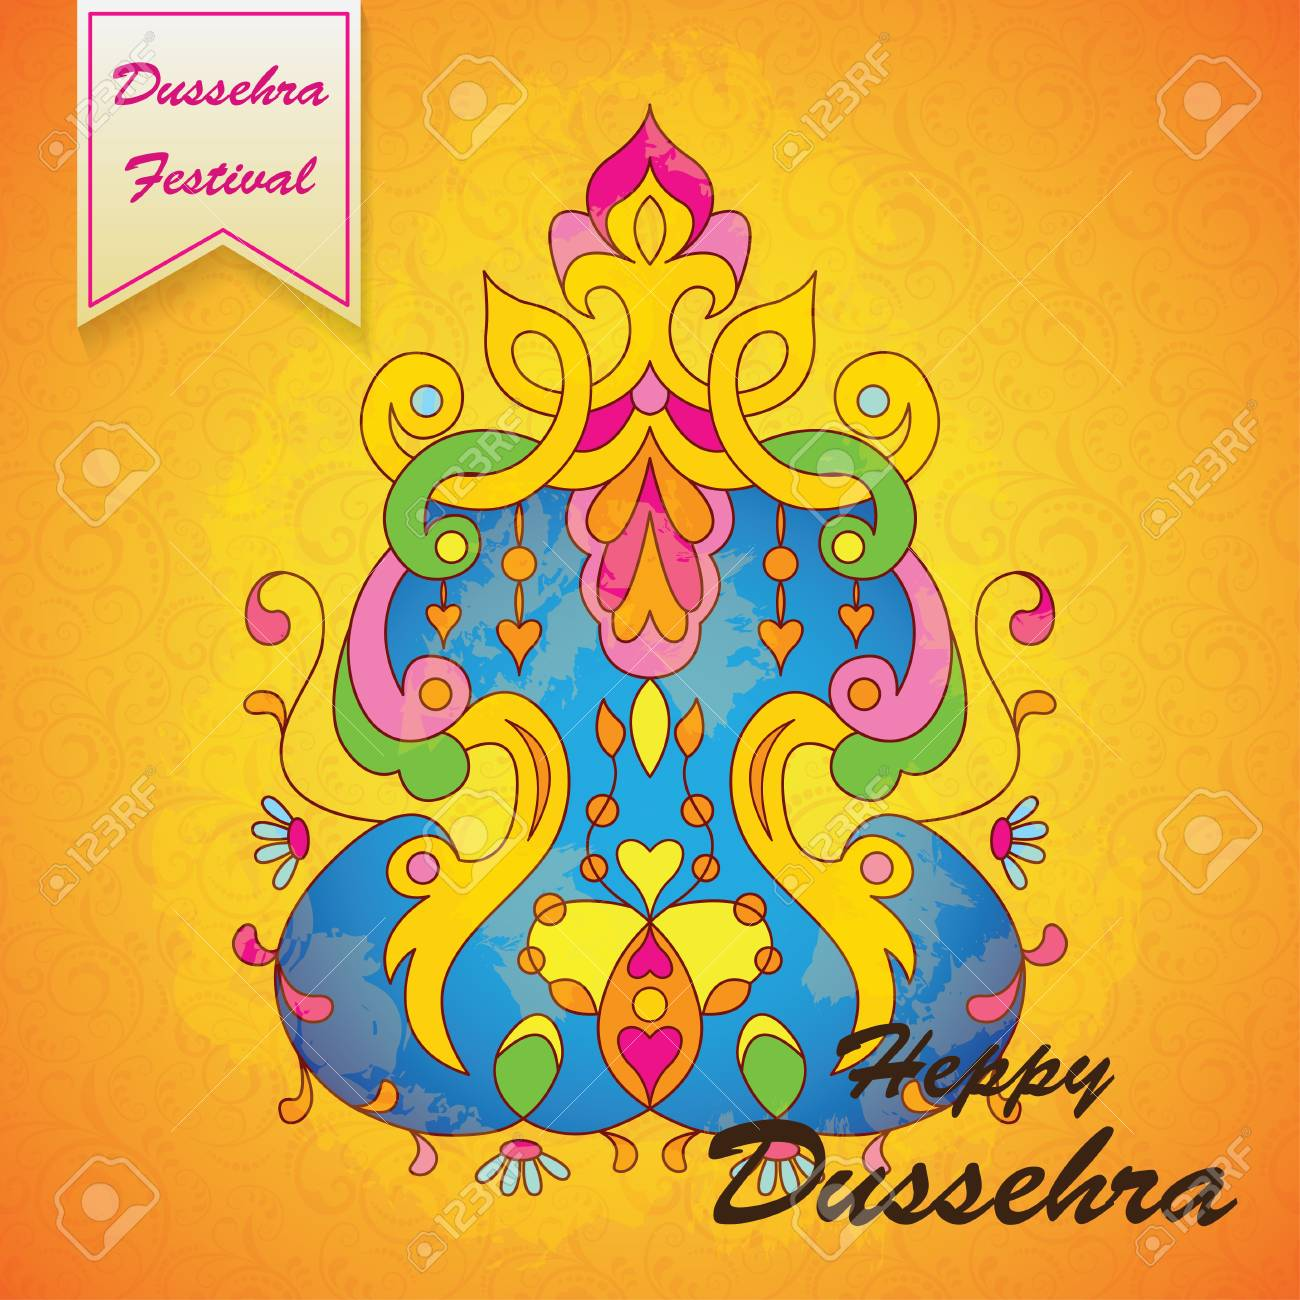 Dussehra festival backgroundeeting card for dussehra celebration dussehra festival backgroundeeting card for dussehra celebration in india stock vector 63810255 kristyandbryce Choice Image